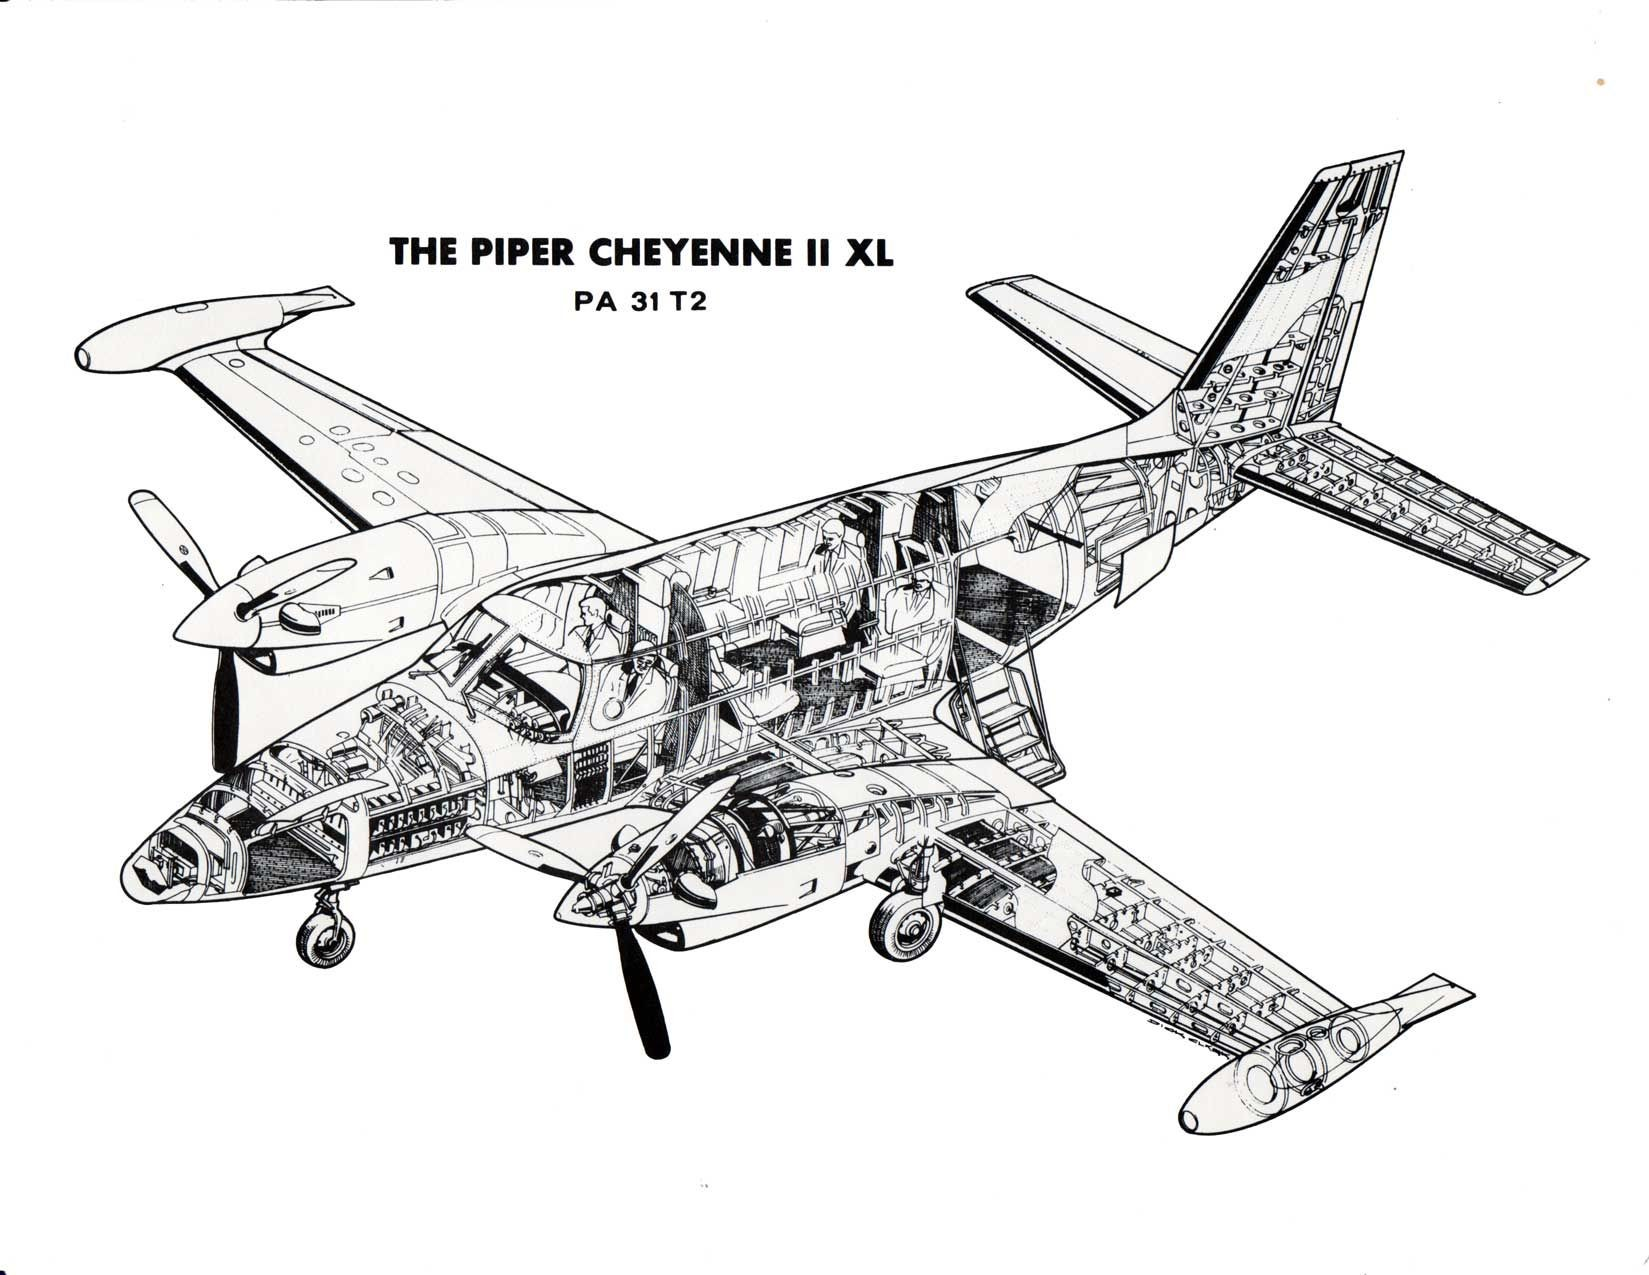 The Piper Cheyenne Ii Xl Plane Structure